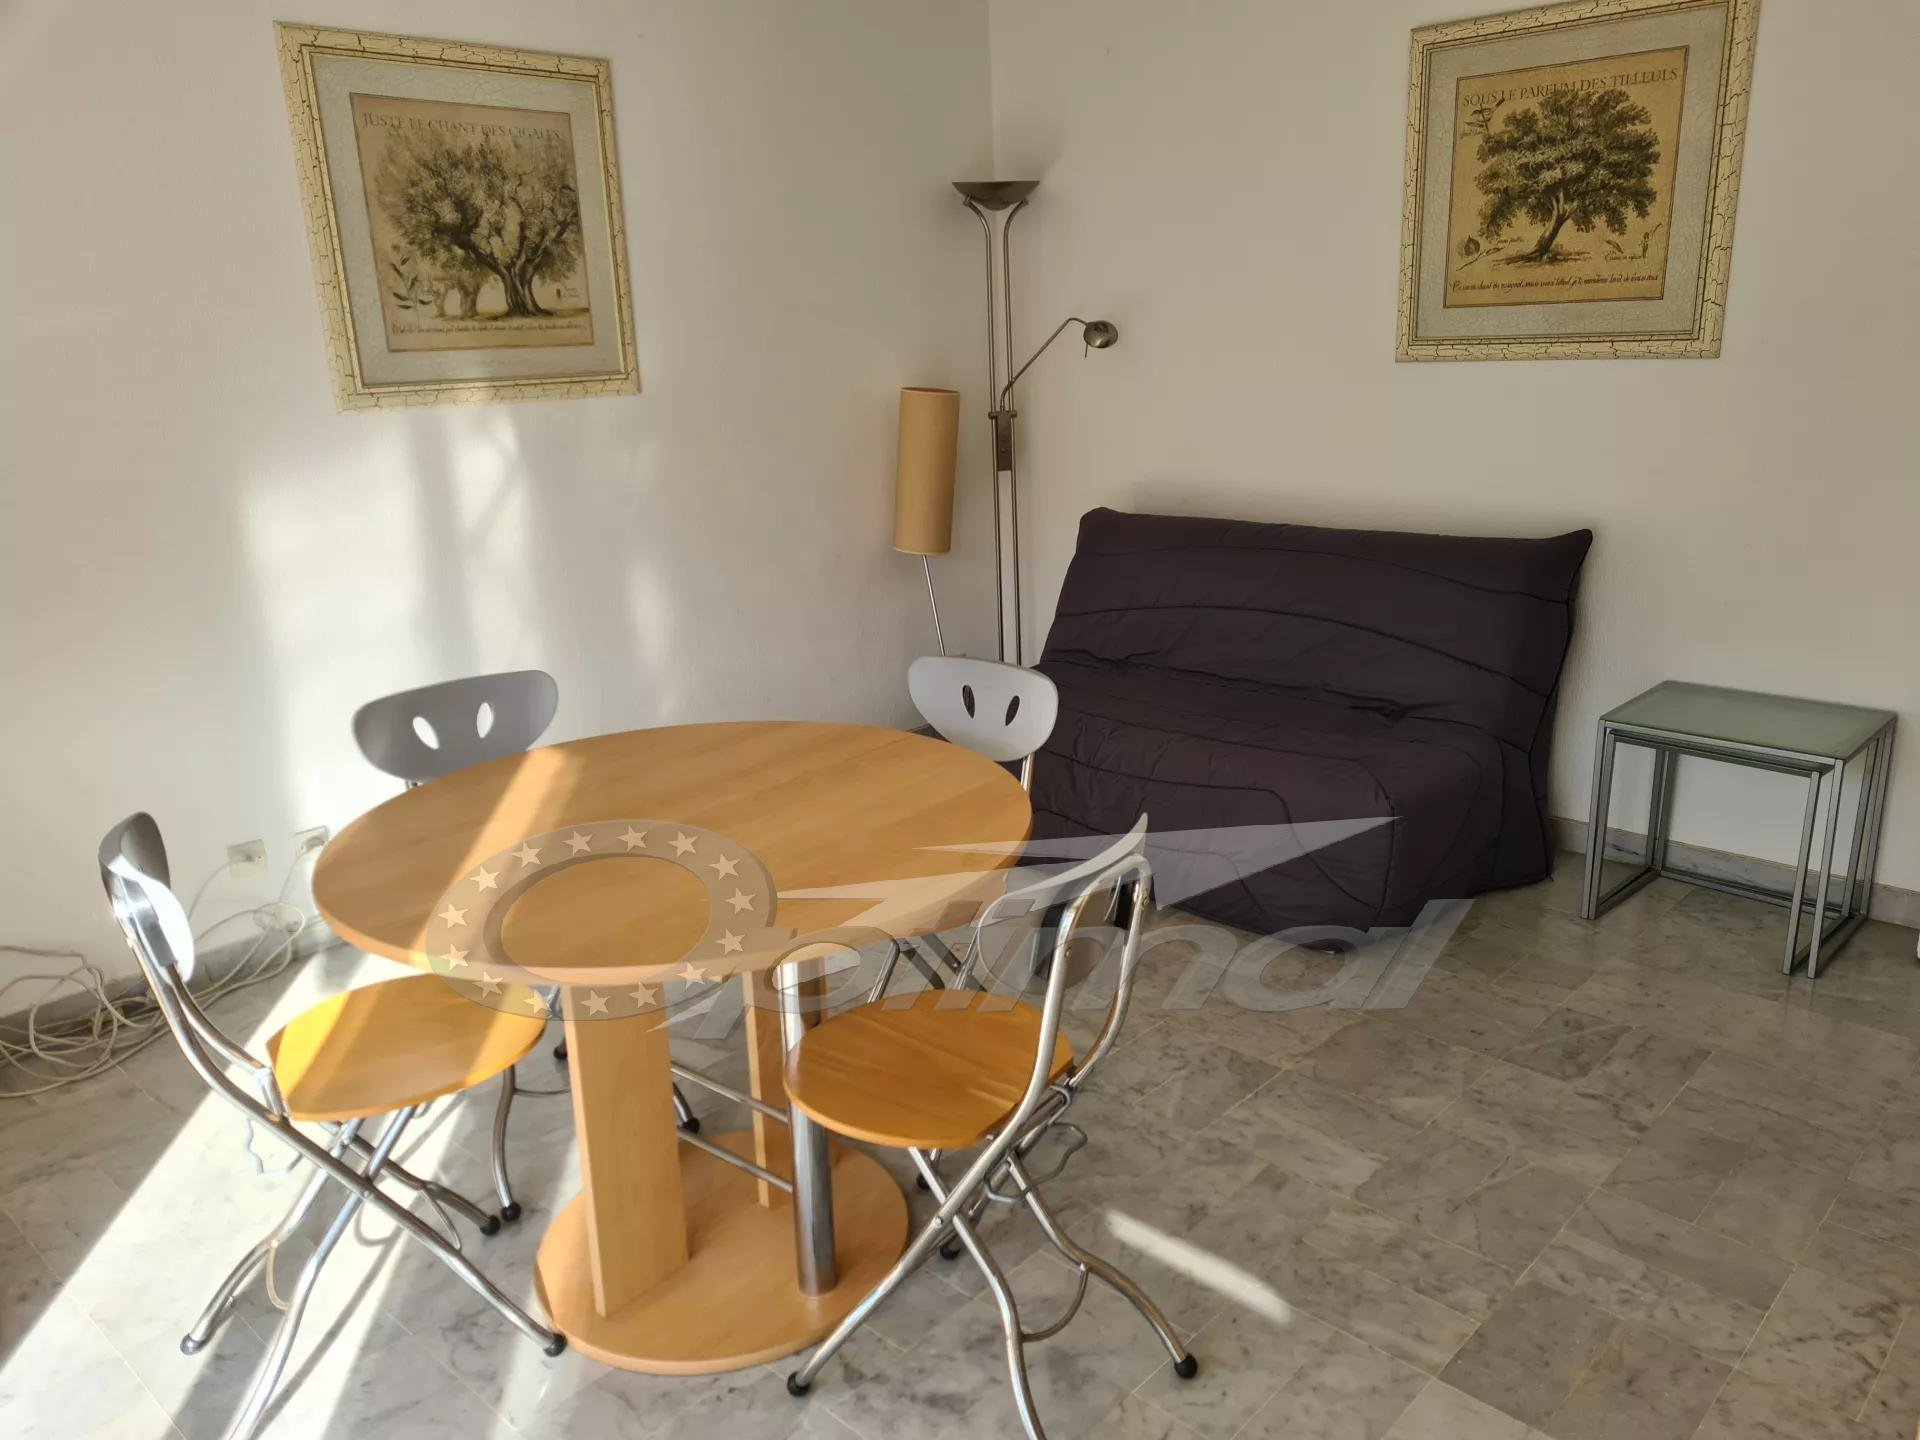 Location Studio - Roquebrune-Cap-Martin